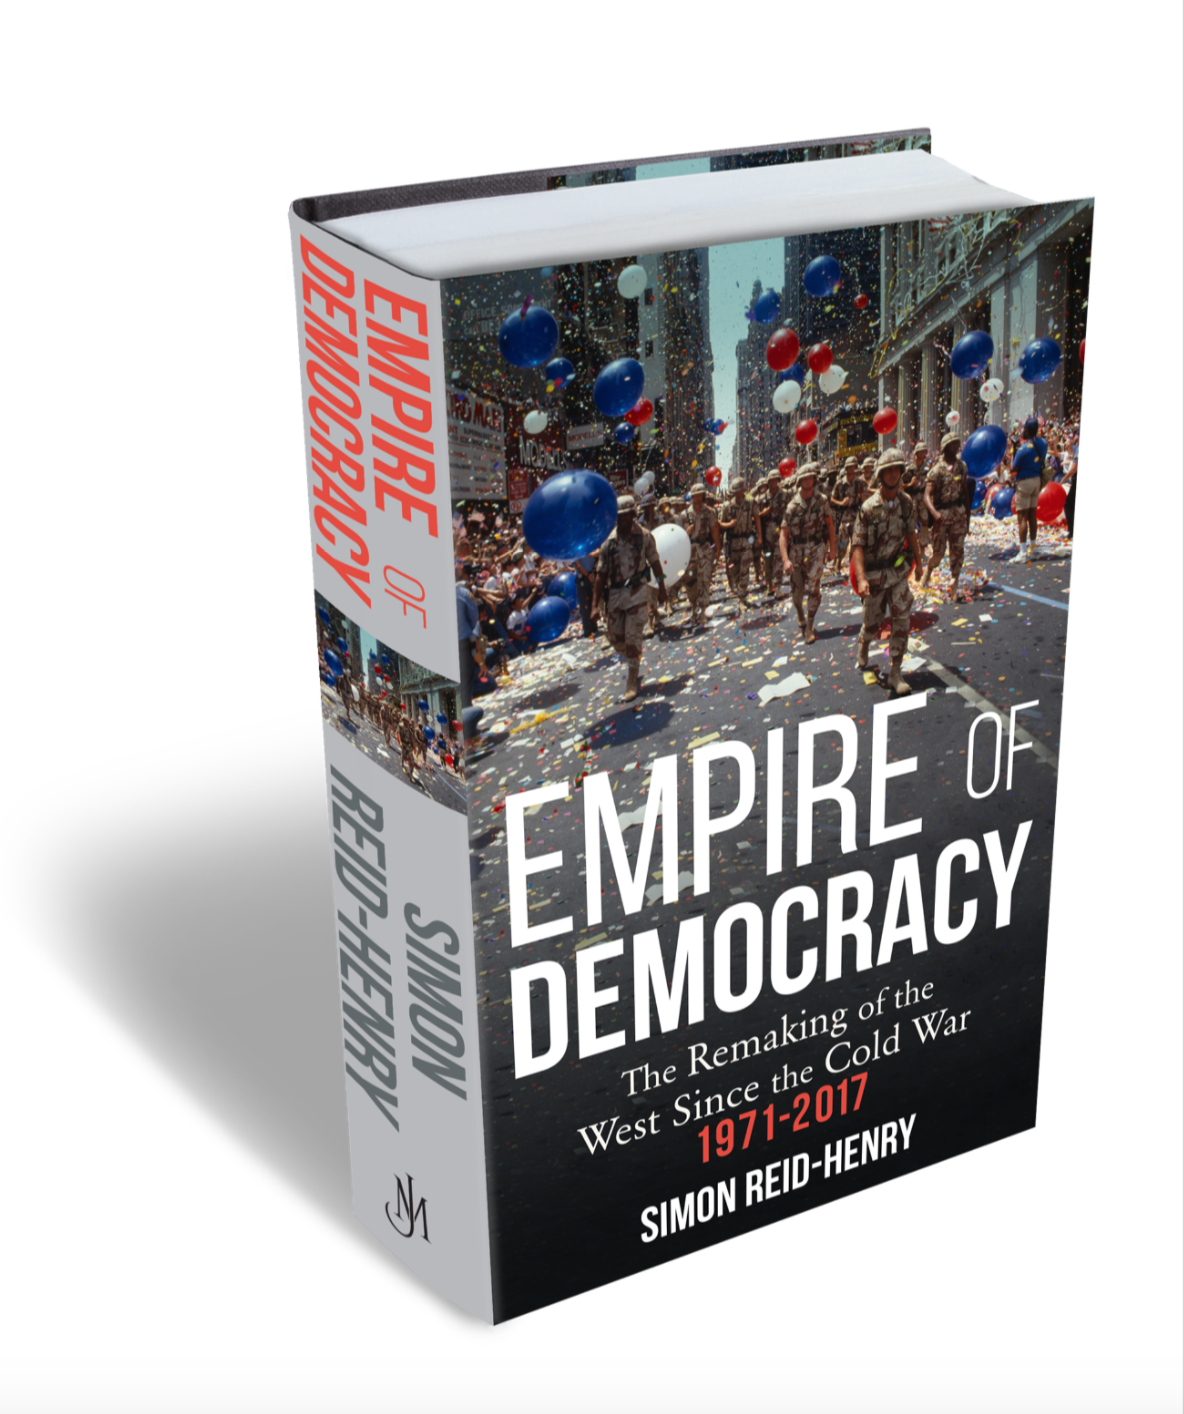 EMPIRE OF DEMOCRACY is out in the US, UK and Canada in June. Available for pre-order now. - For Media and Press Enquiries: Yassine Belkacime (Yassine.Belkacemi@hodder.co.uk)